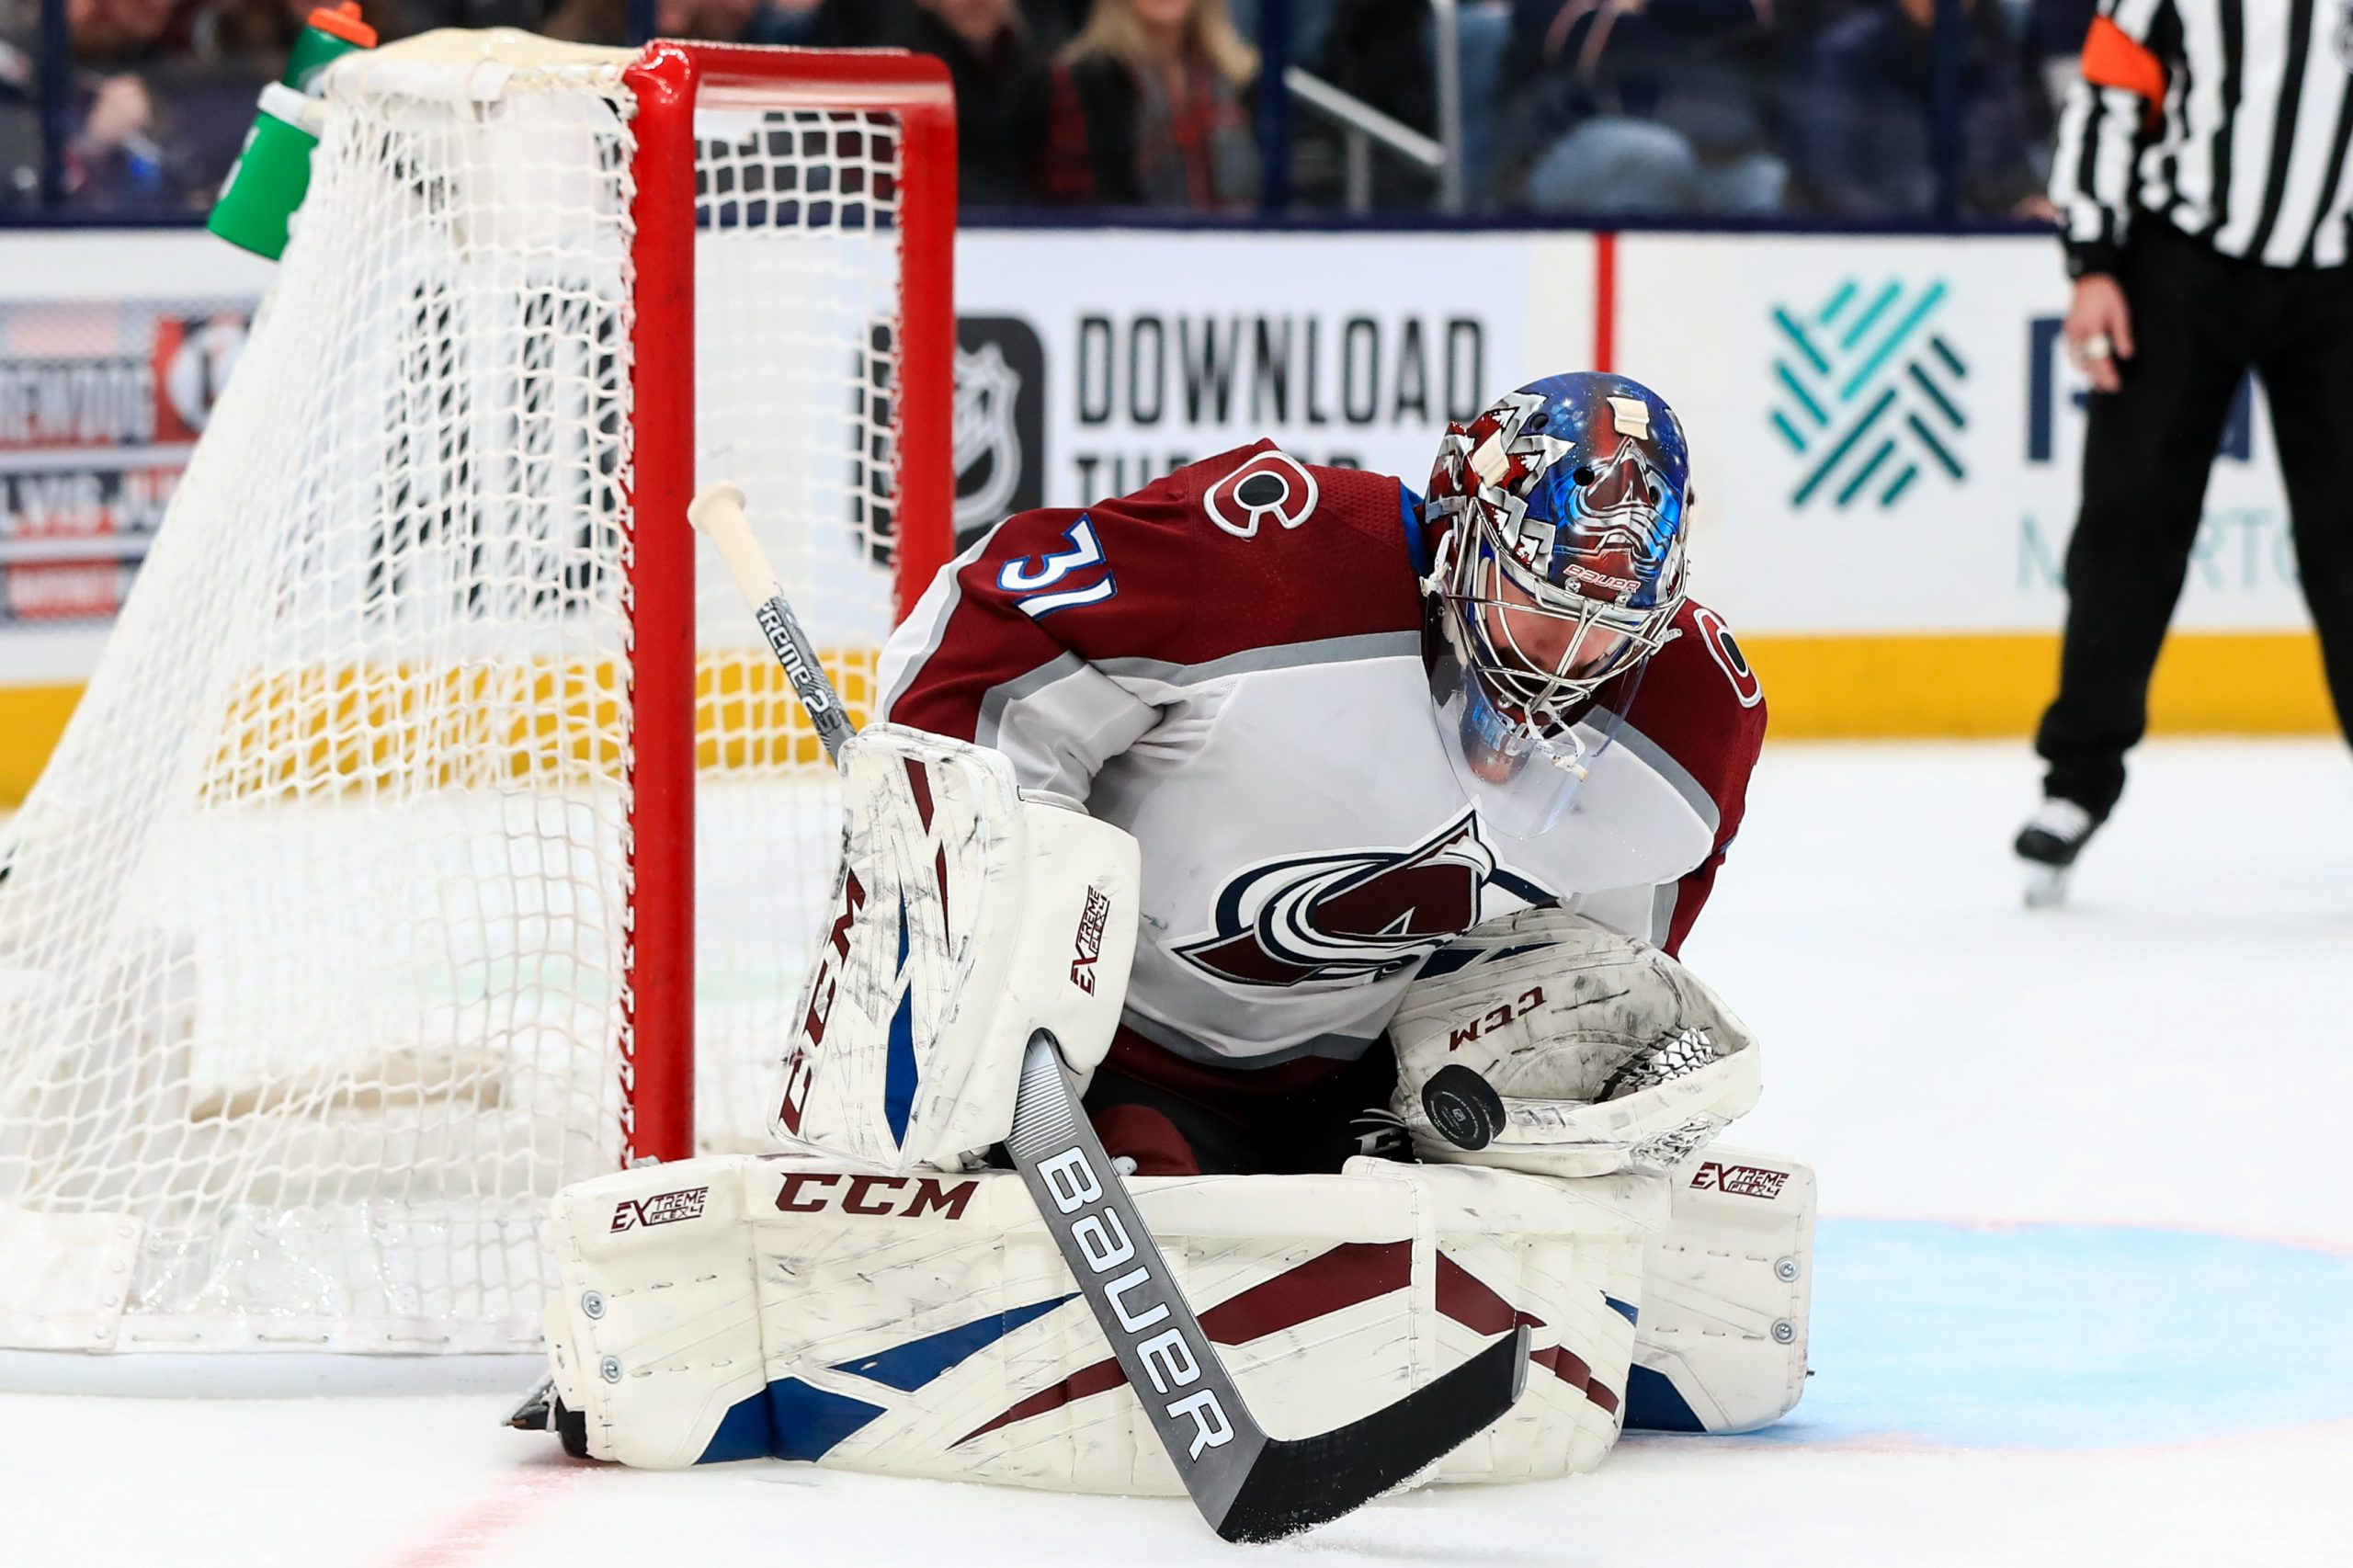 Philipp Grubauer (31) makes a save in net